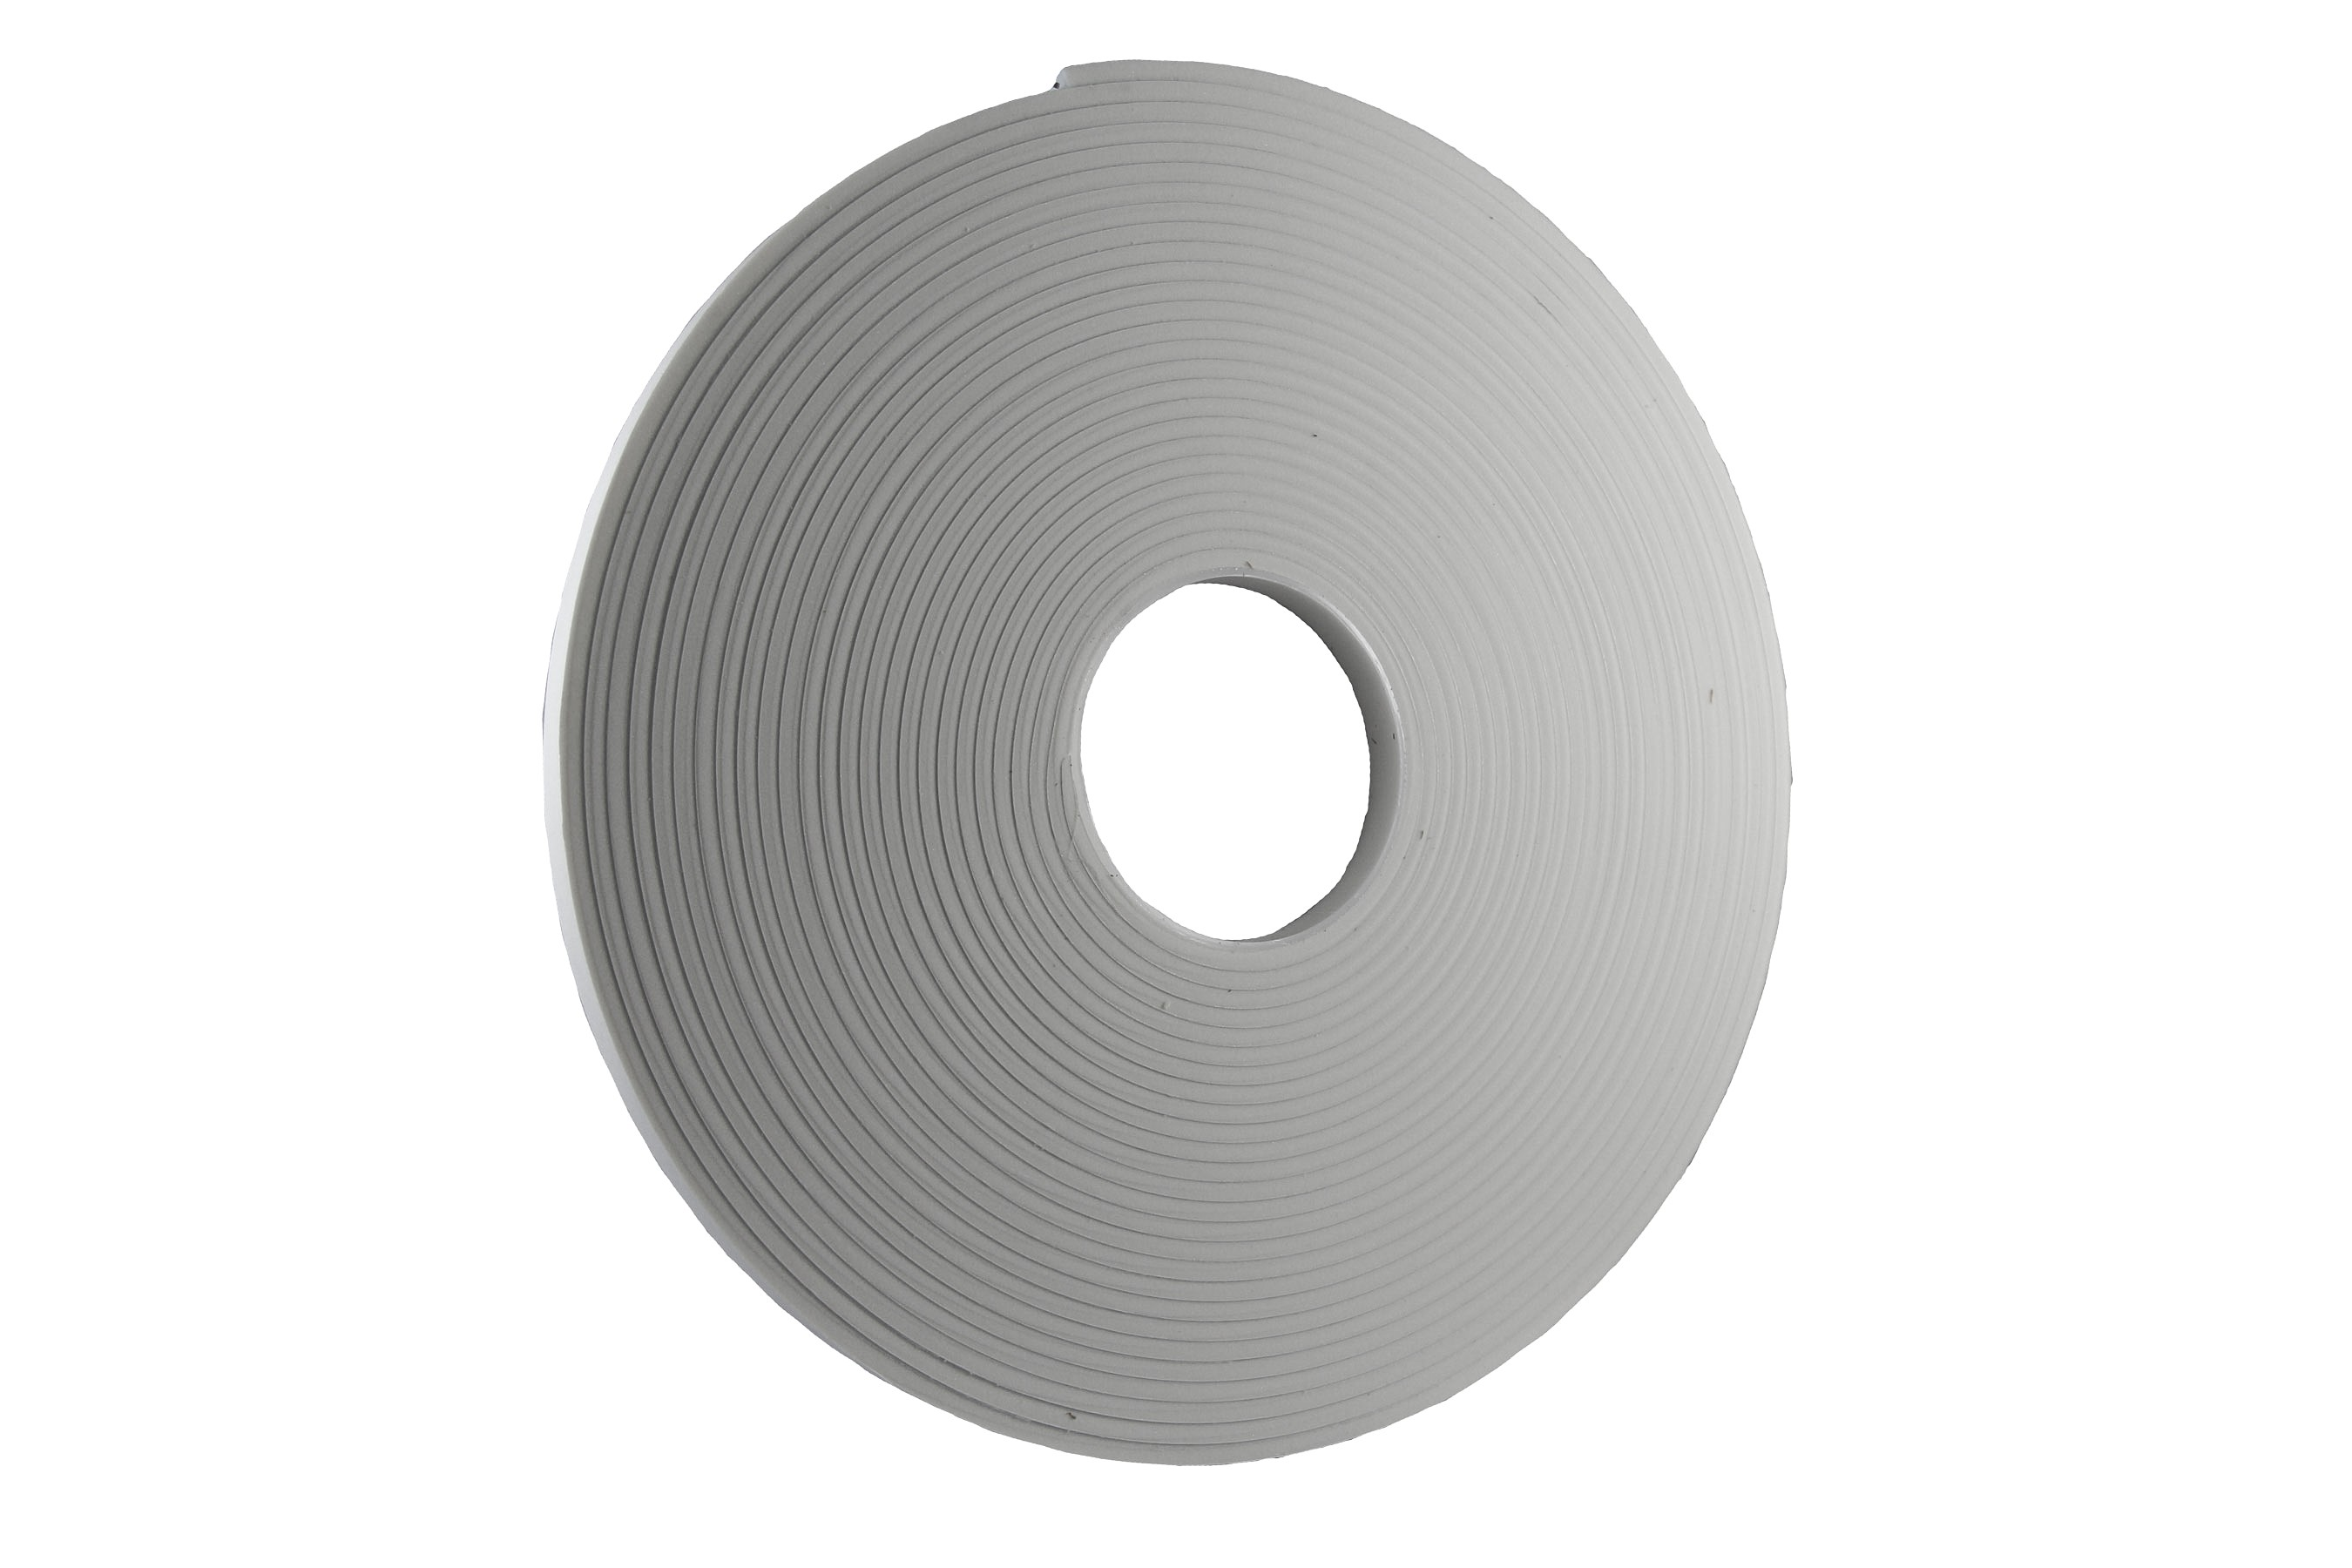 MEZ-PVC-TAPE - 7x4,5 mm x 15m